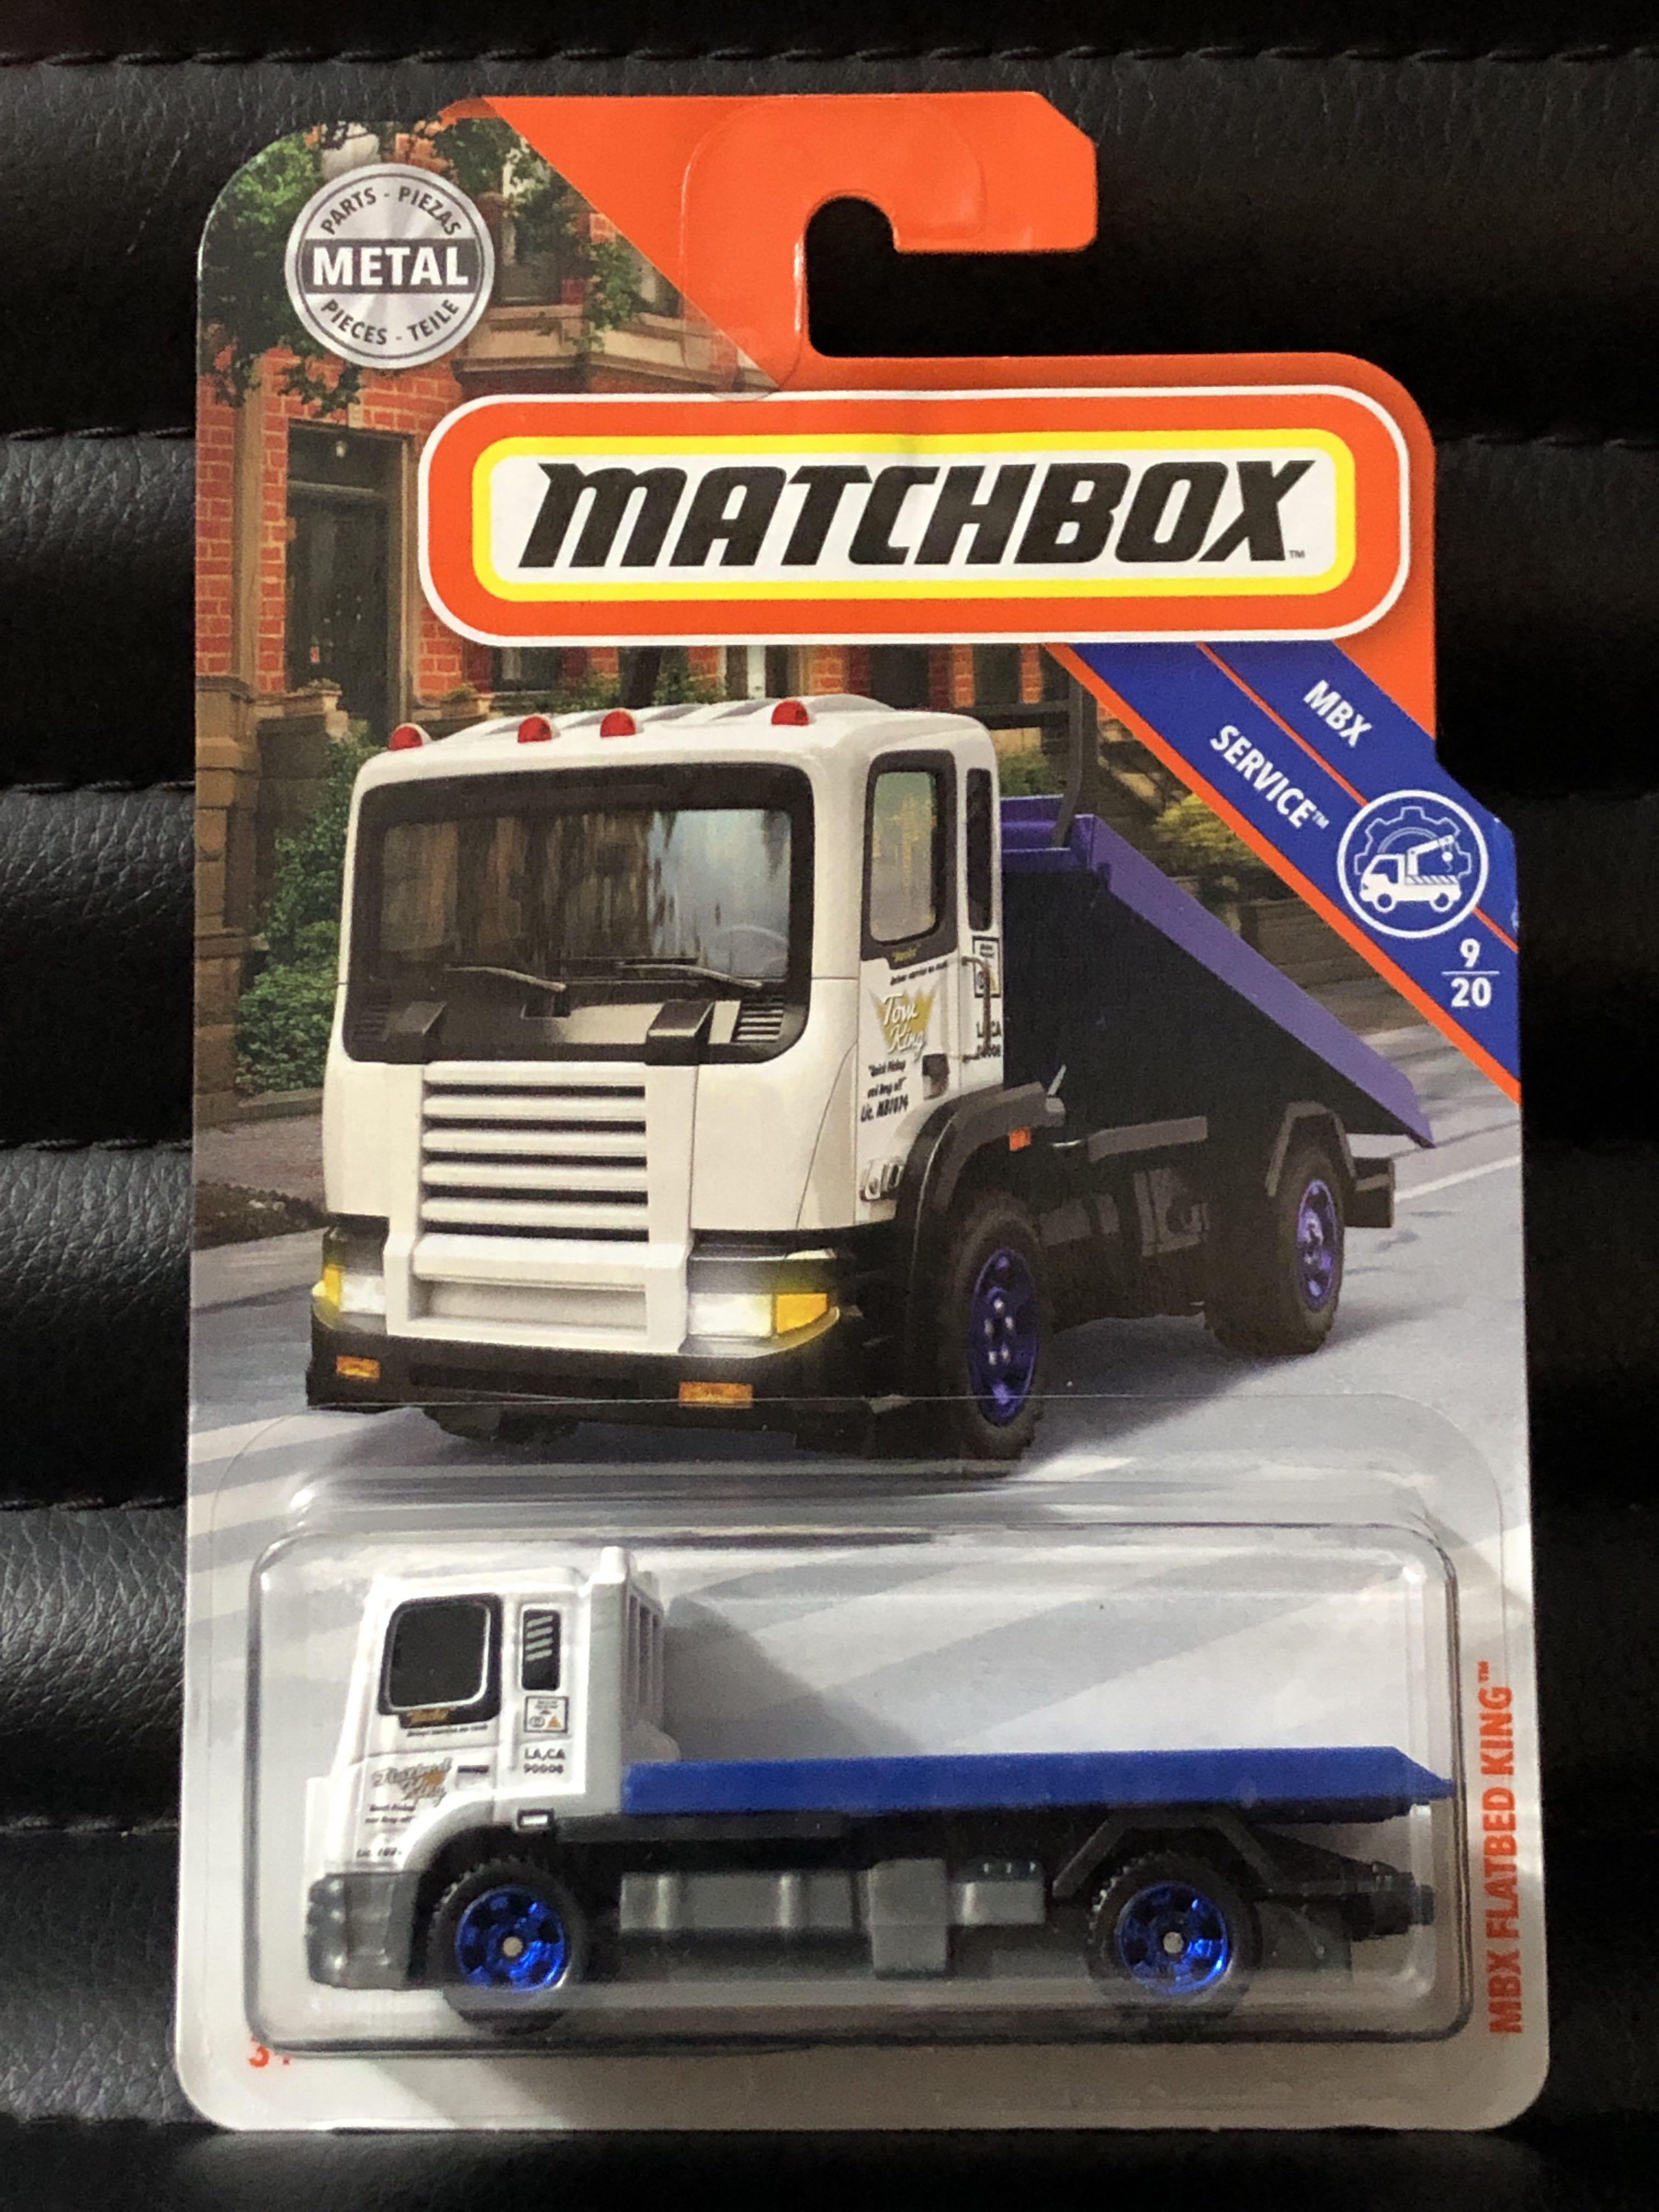 Matchbox Mbx Services Flatbed Truck Kings Toys Games Bricks Figurines On Carousell